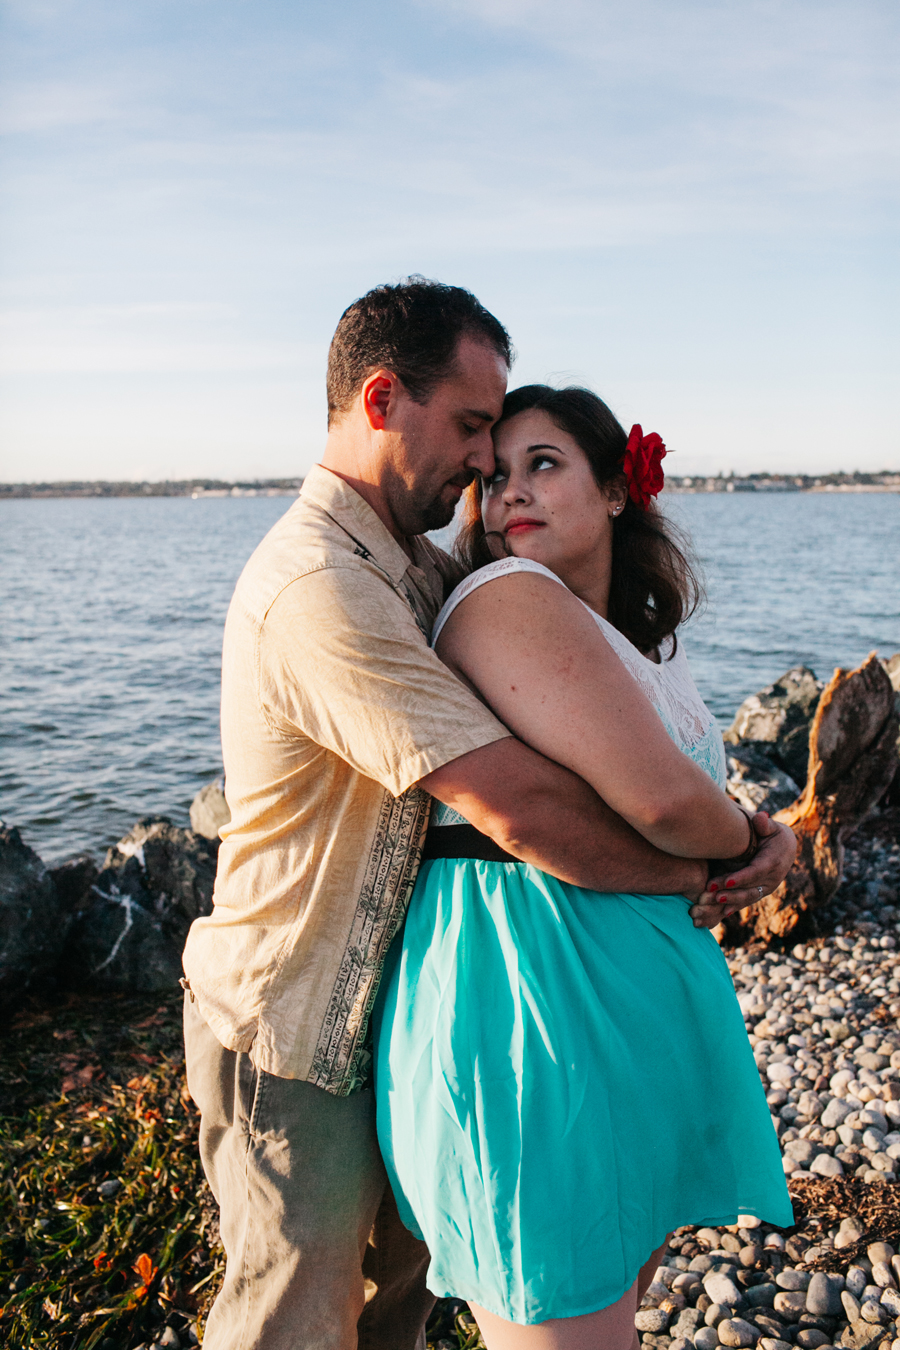 018-bellingham-engagement-photographer-katheryn-moran-photography-boulevard-park.jpg